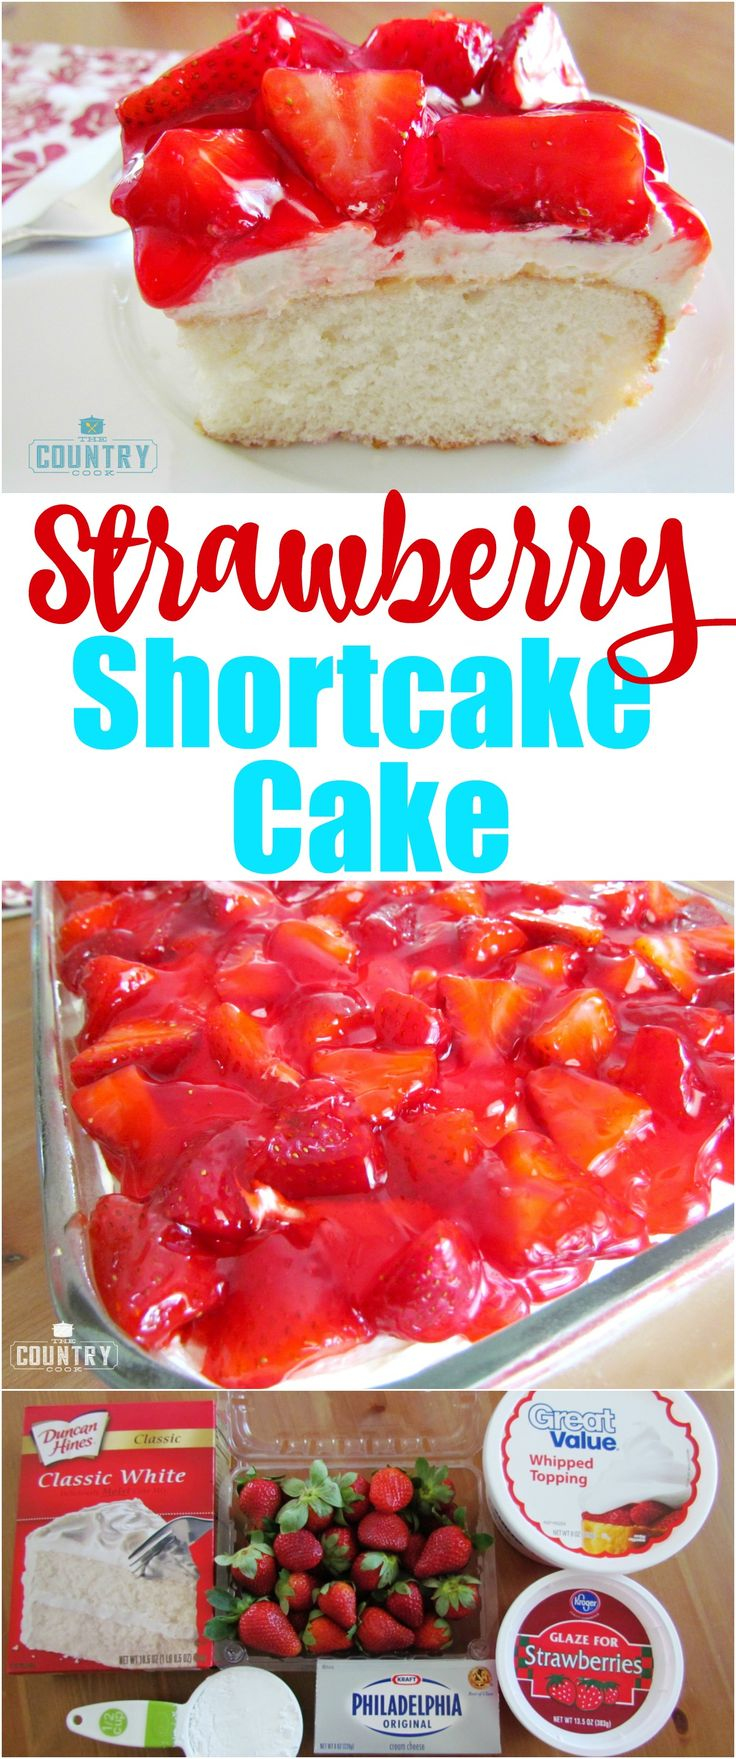 Strawberry Shortcake Cake recipe from The Country Cook